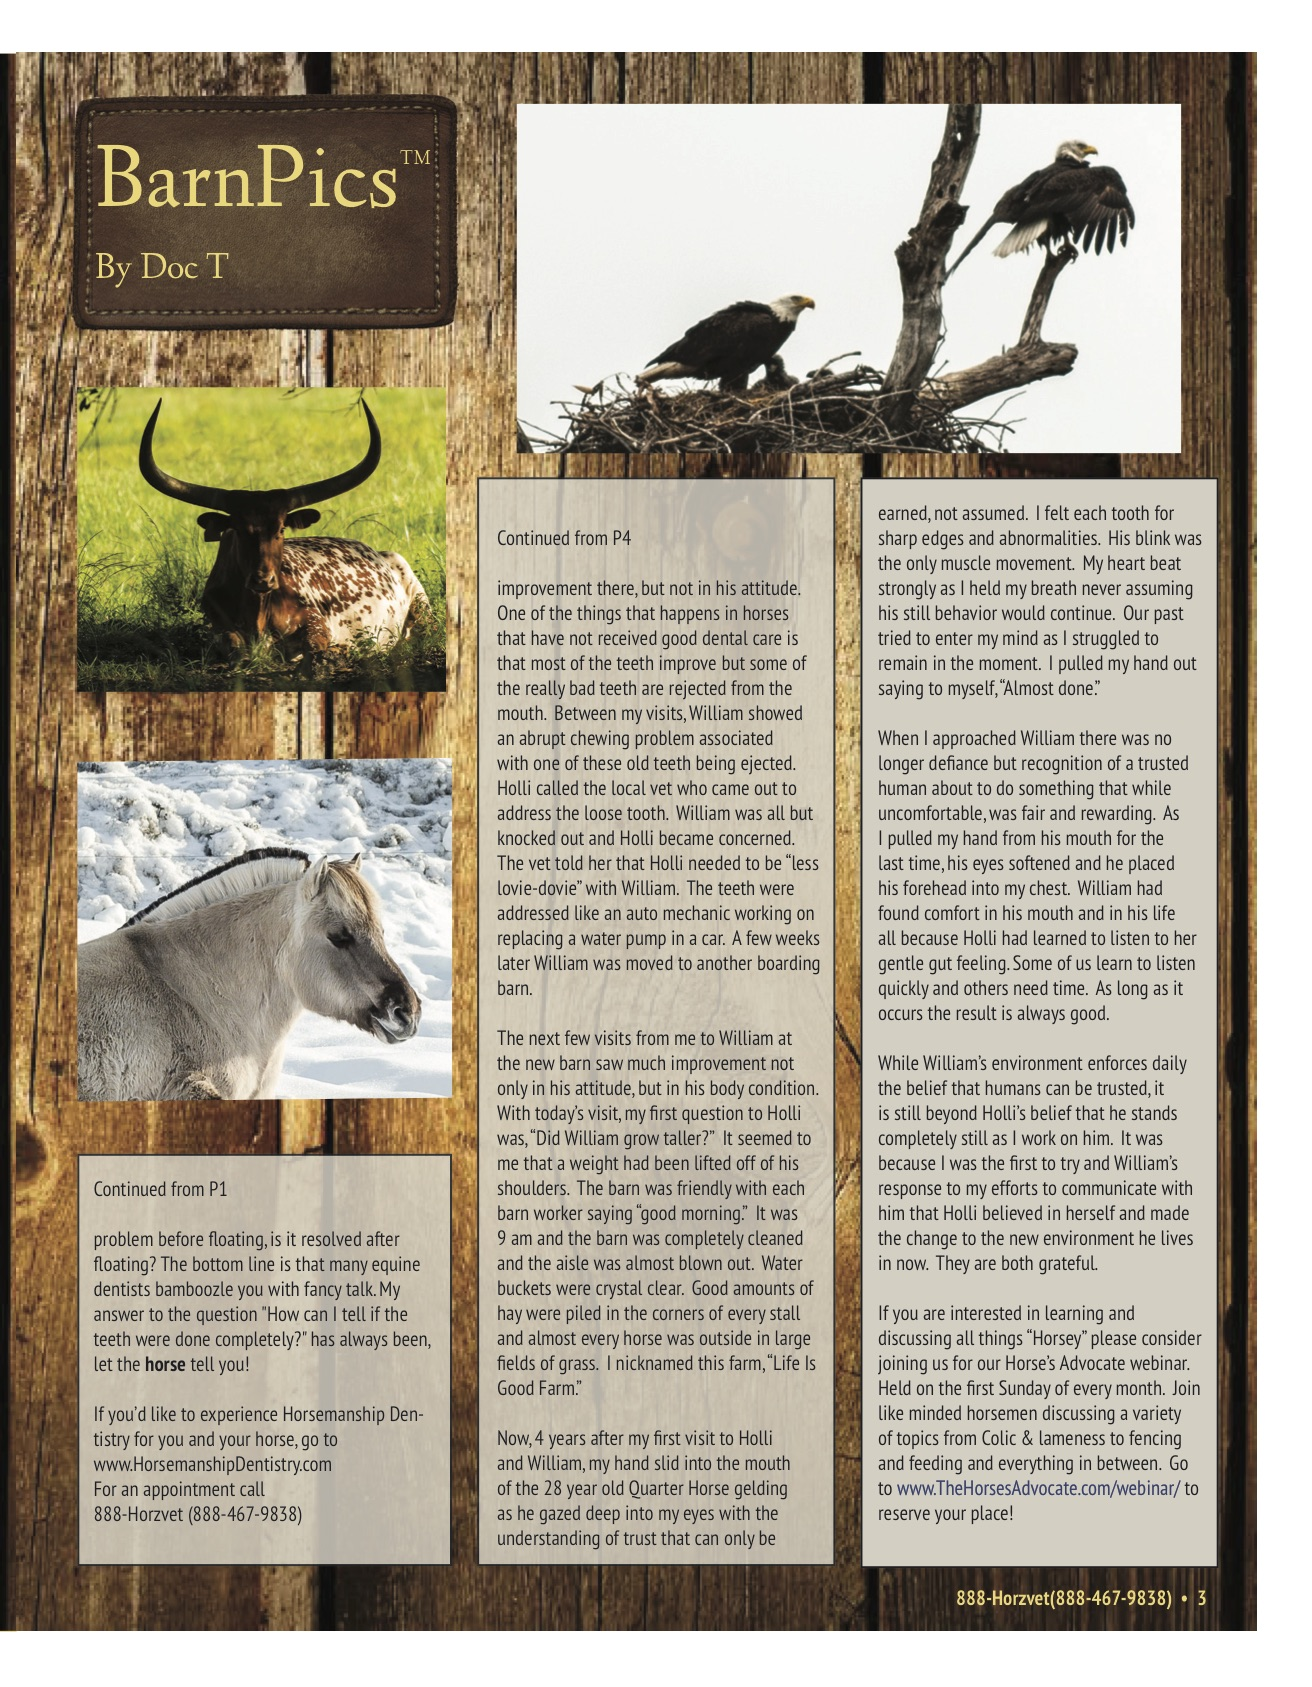 The Equine Practice Rounds™ Vol 1 Issue 1 page 3 of 4